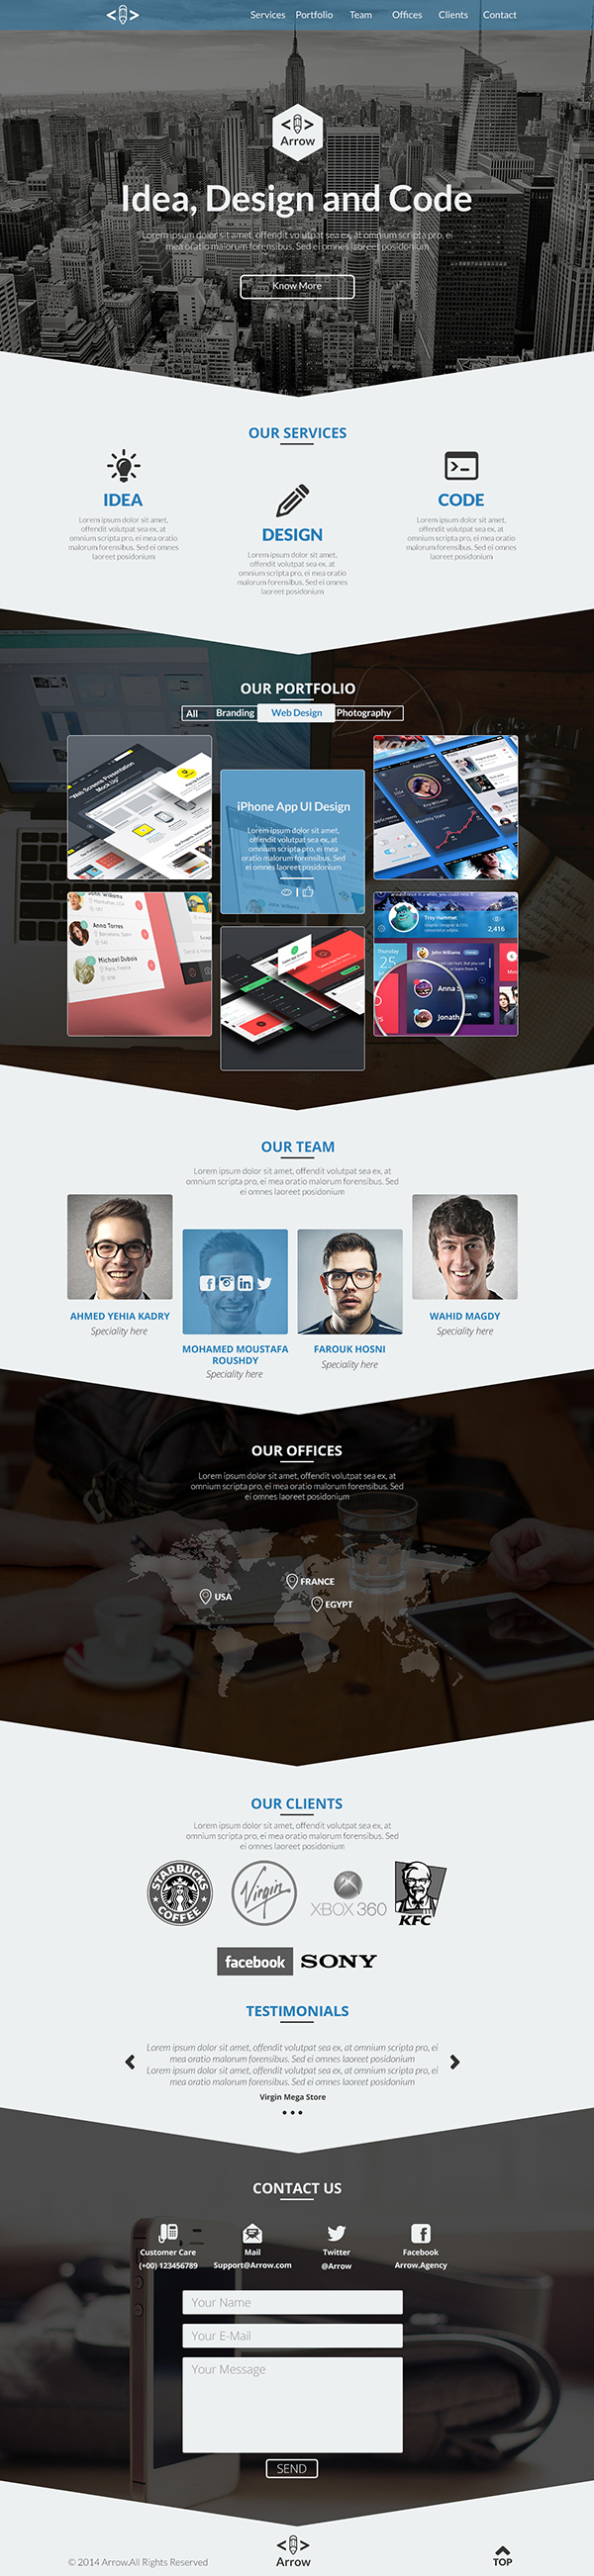 PSD Templates 20 One Page Free Web Templates  Freebies  Graphic Design Junction